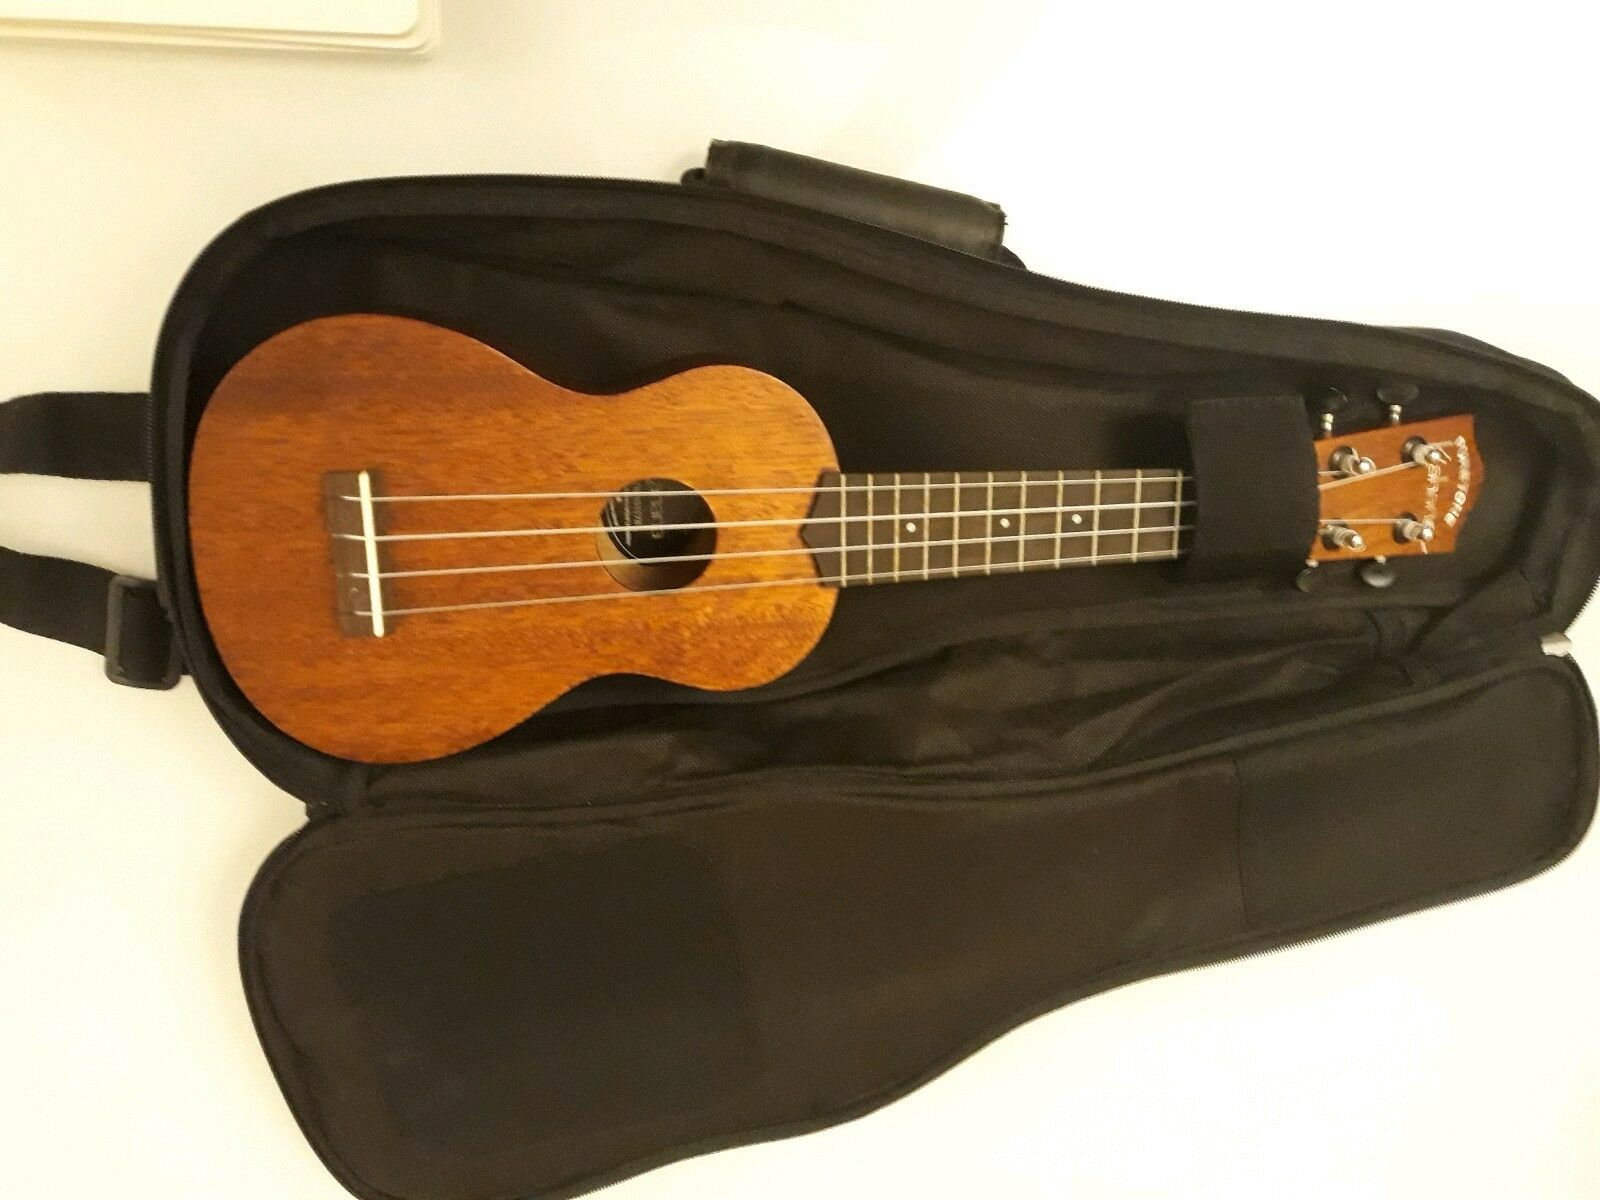 PURETONE SOPRANO UKULELE WITH CARRY CASE AND 2 MUSIC BOOKS (BRAND NEW)